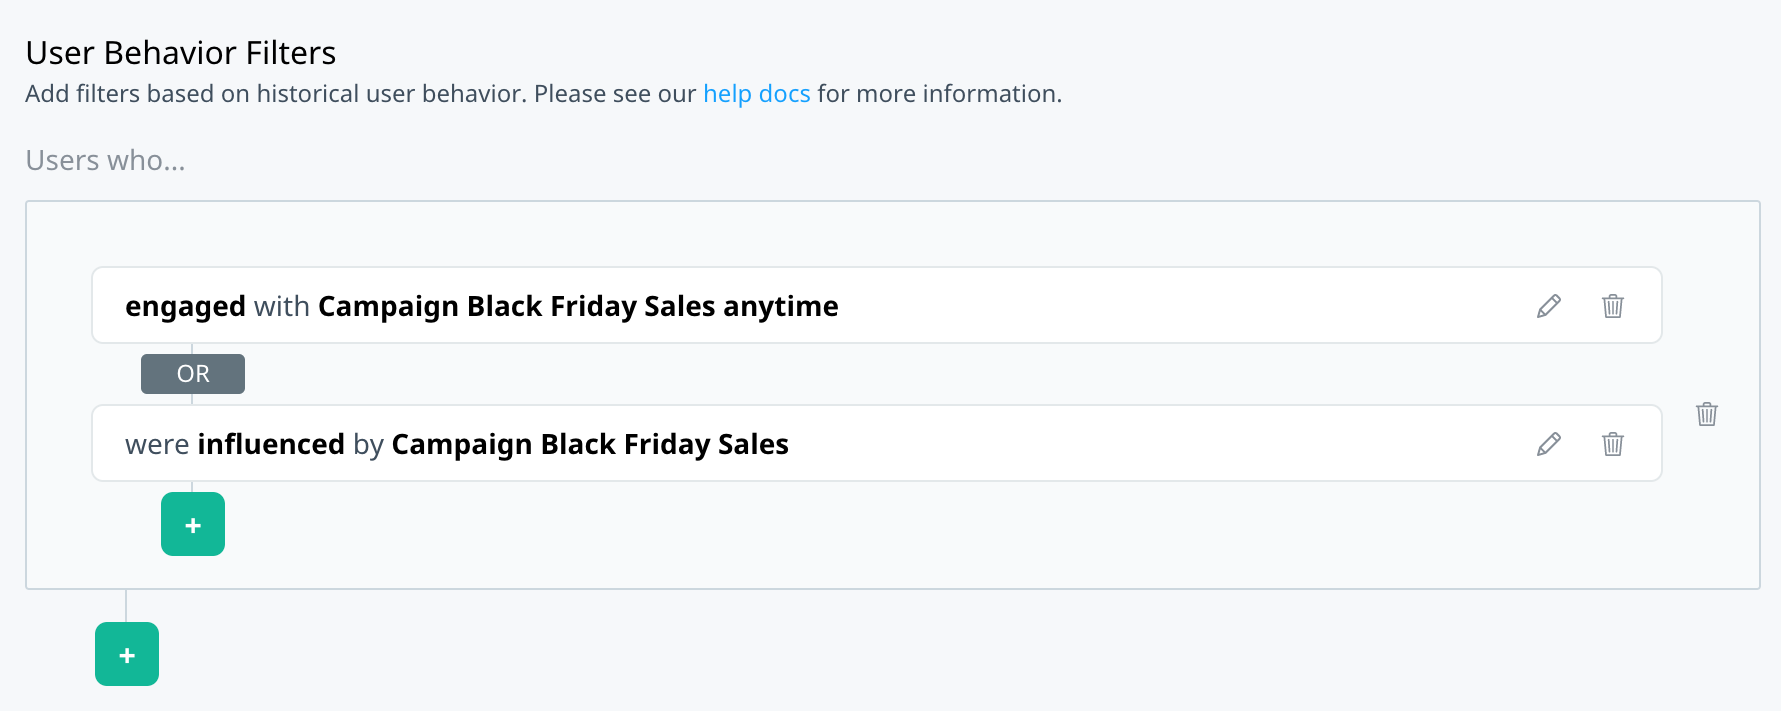 Black Friday engaged and influenced filters joined by OR operator